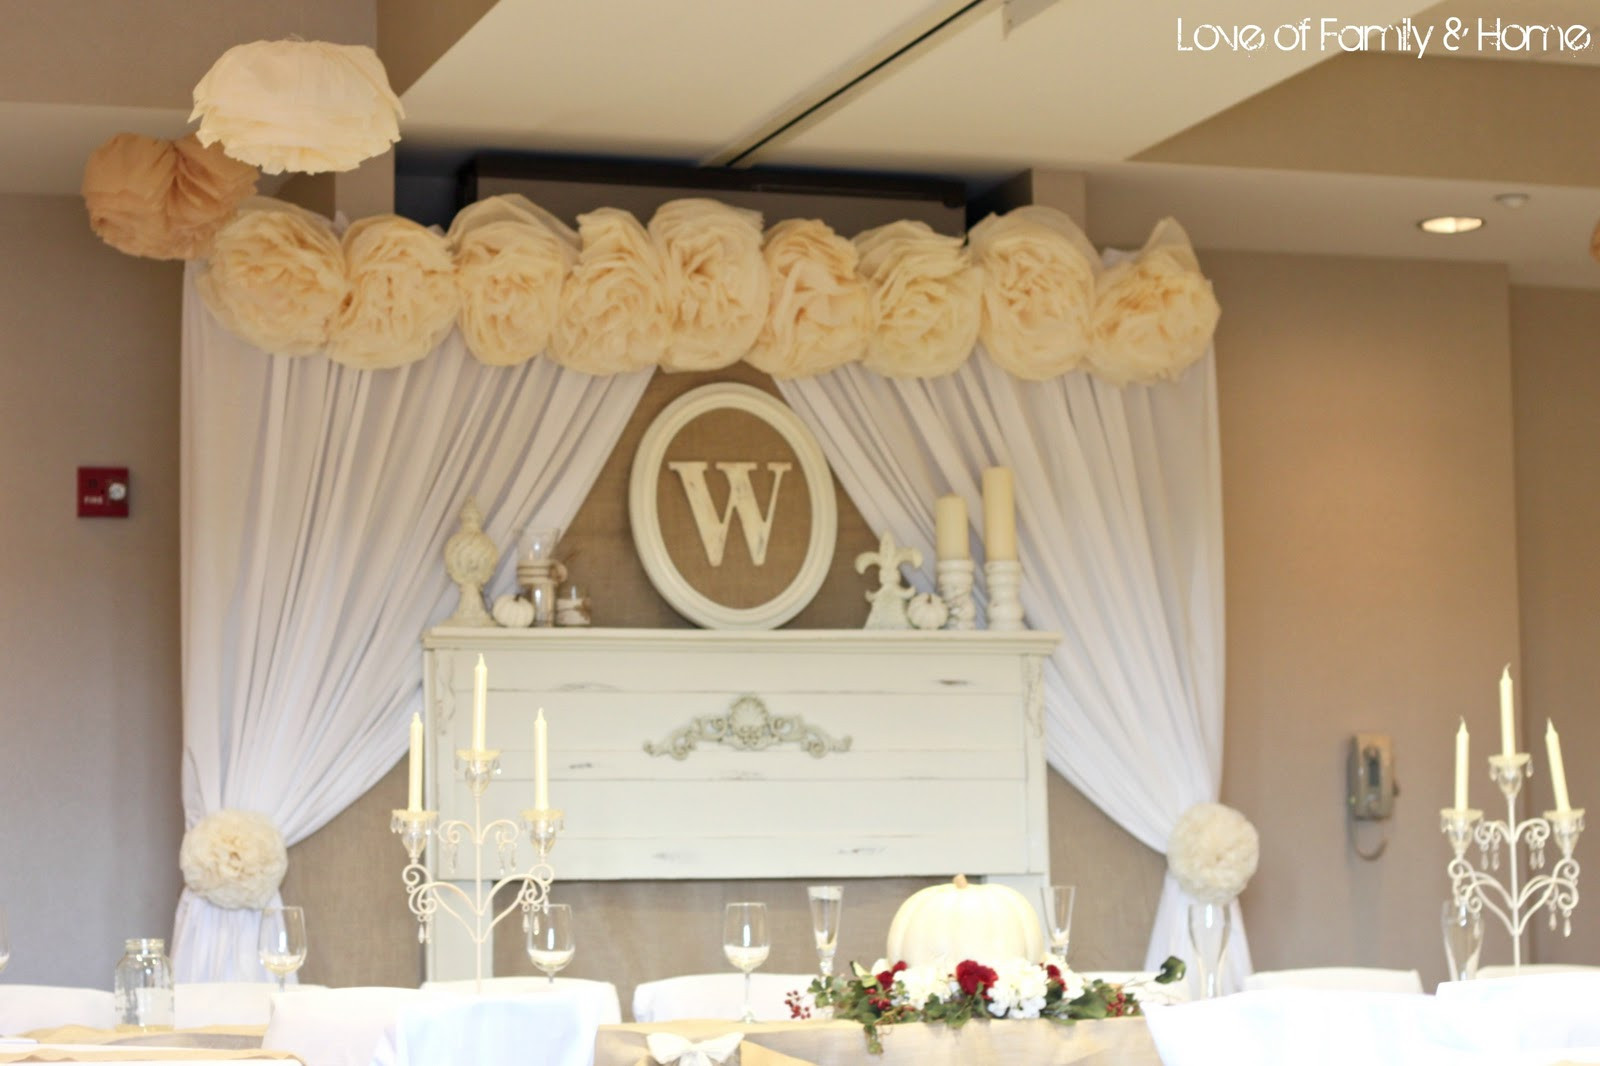 Best ideas about DIY Wedding Decorations . Save or Pin DIY Rustic Chic Fall Wedding Reveal Love of Family Now.